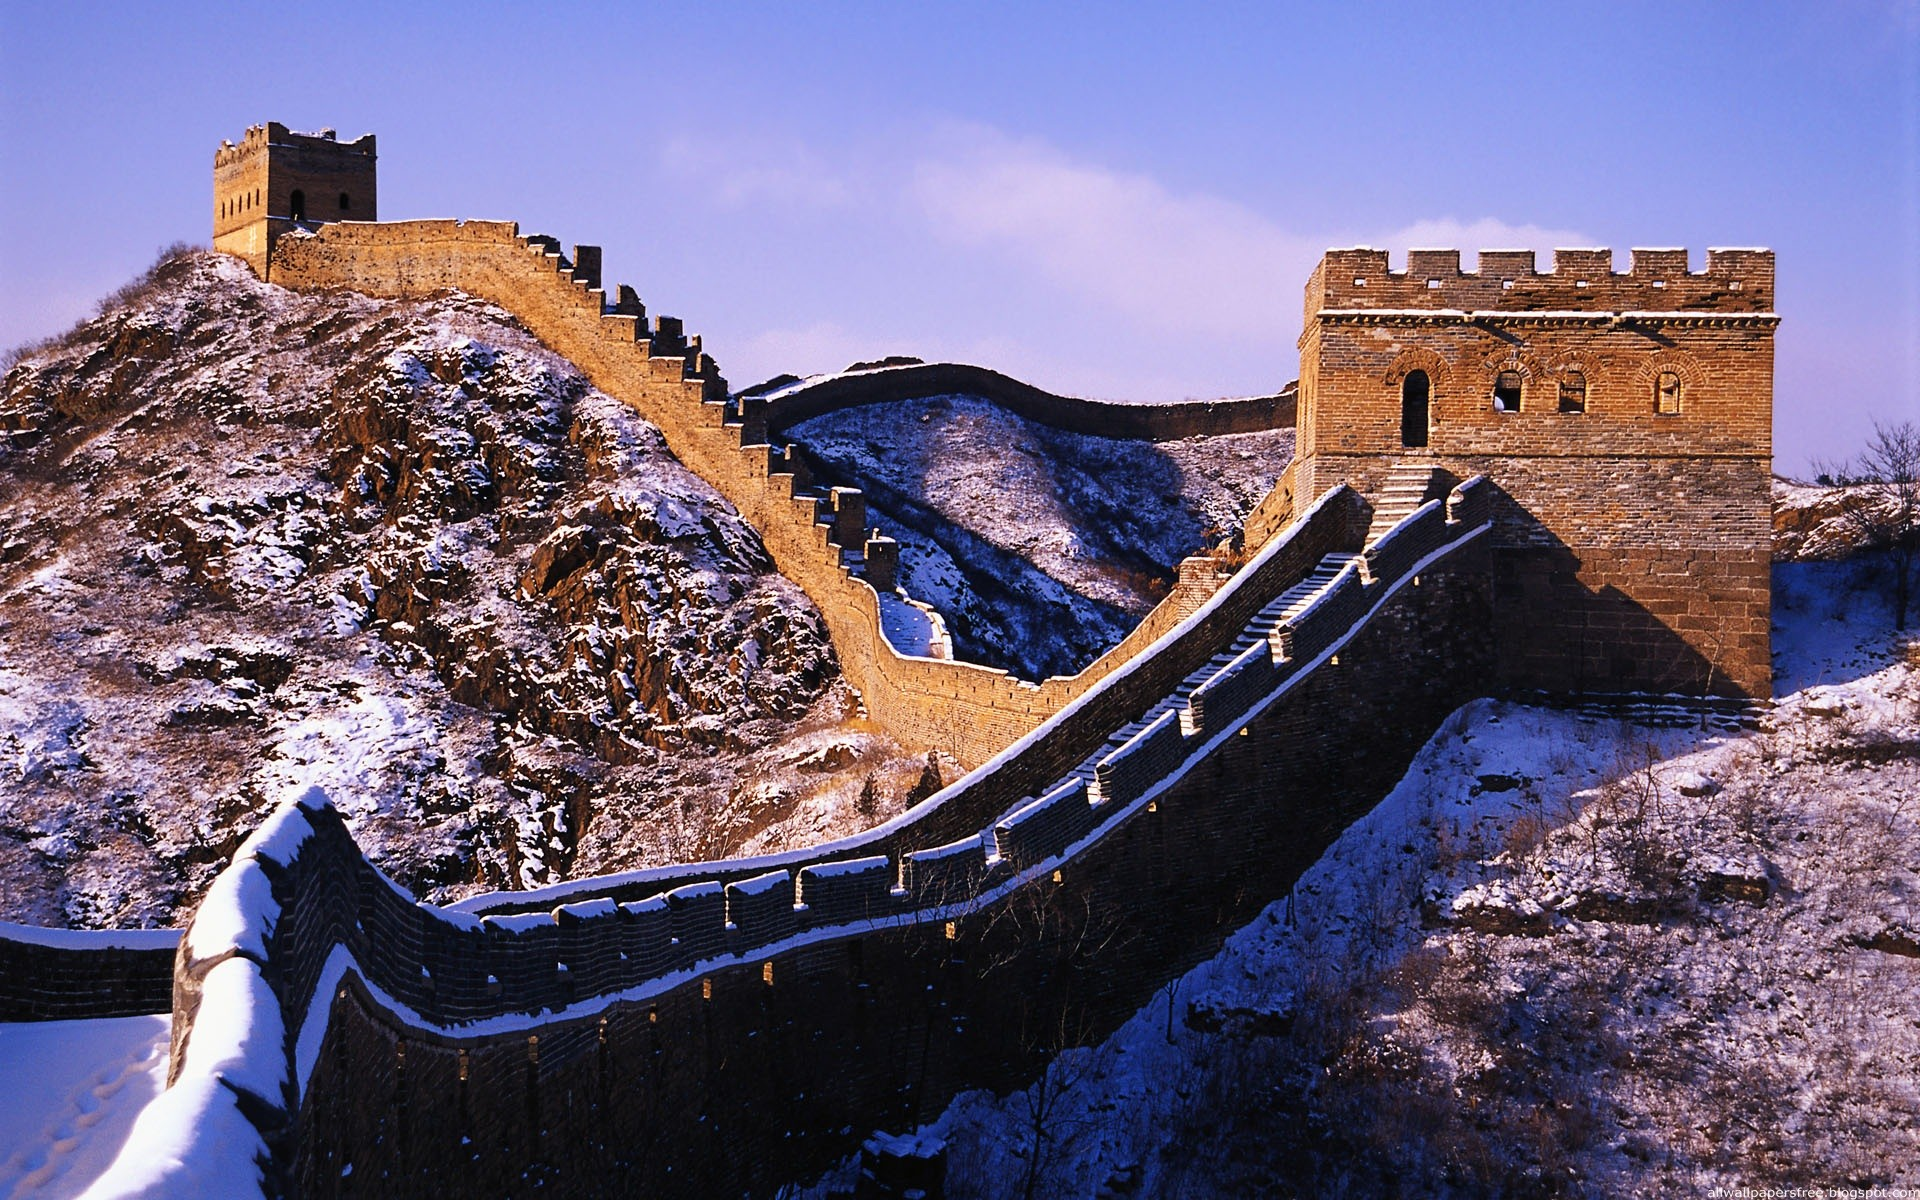 The Great Wall of China Wallpaper 51 images 1920x1200